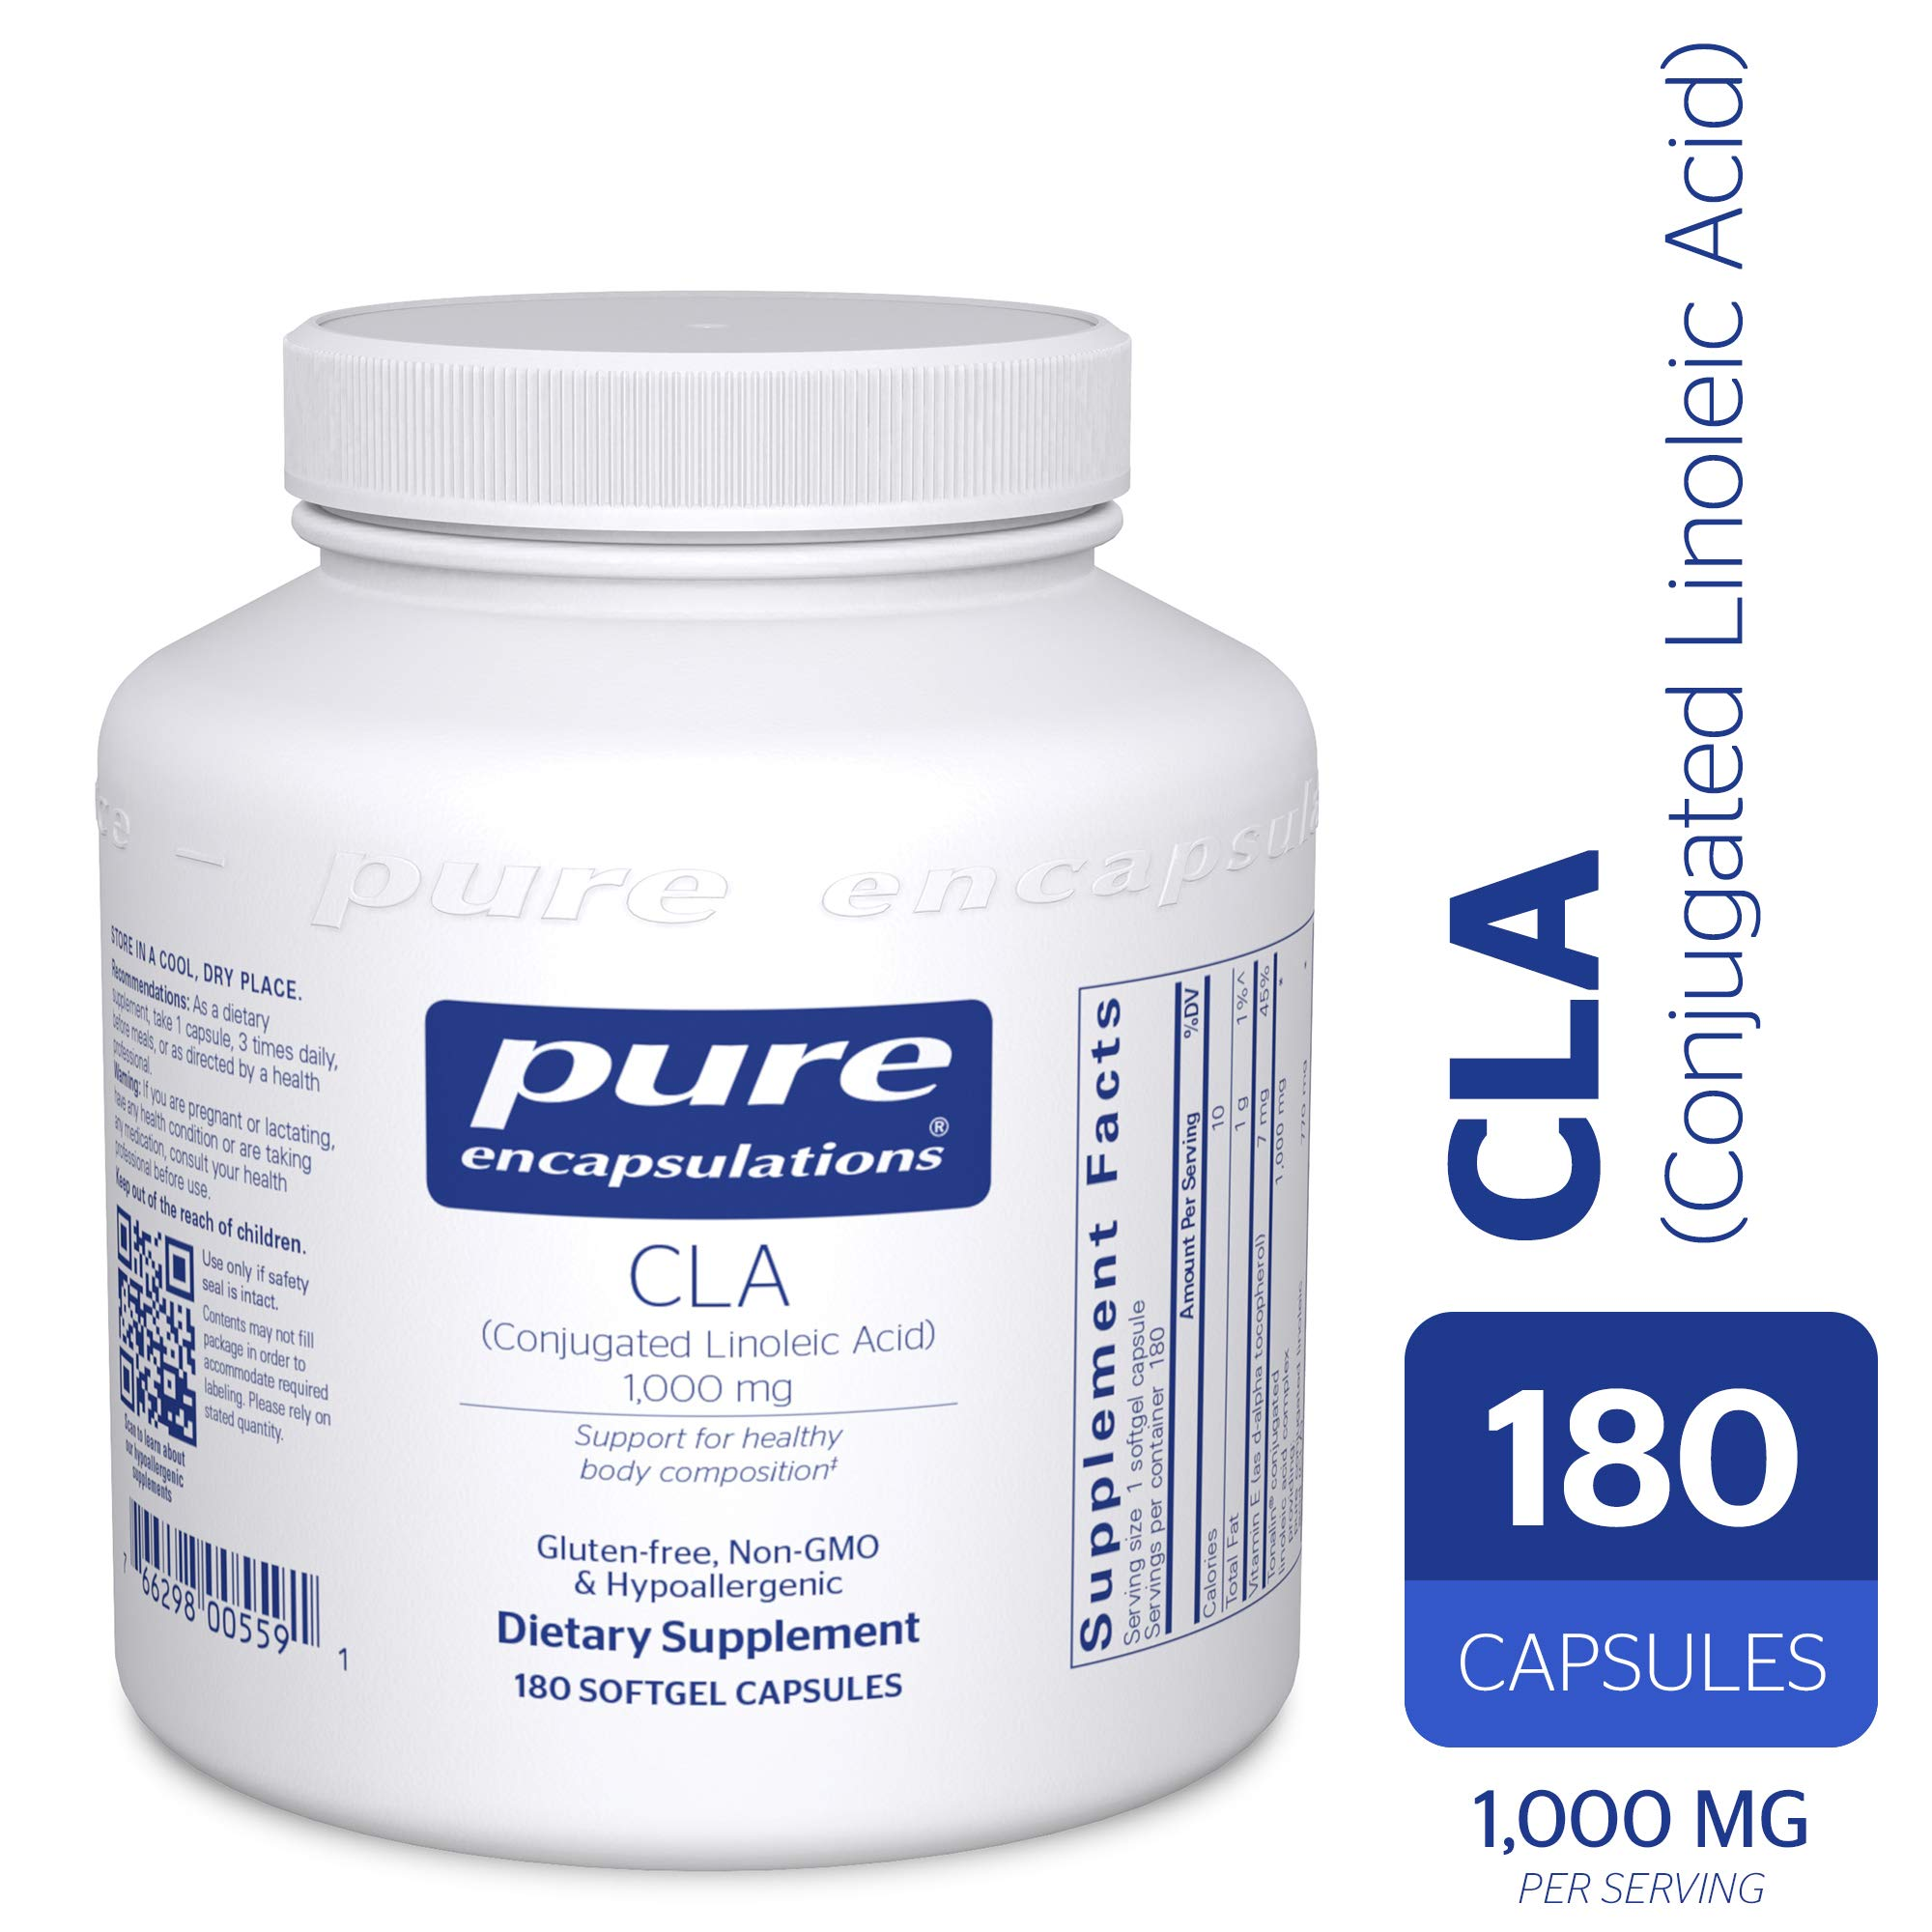 Pure Encapsulations - CLA (Conjugated Linoleic Acid) 1,000 mg - Promotes Healthy Body Composition with Healthy Diet and Exercise* - 180 Softgel Capsules by Pure Encapsulations (Image #1)